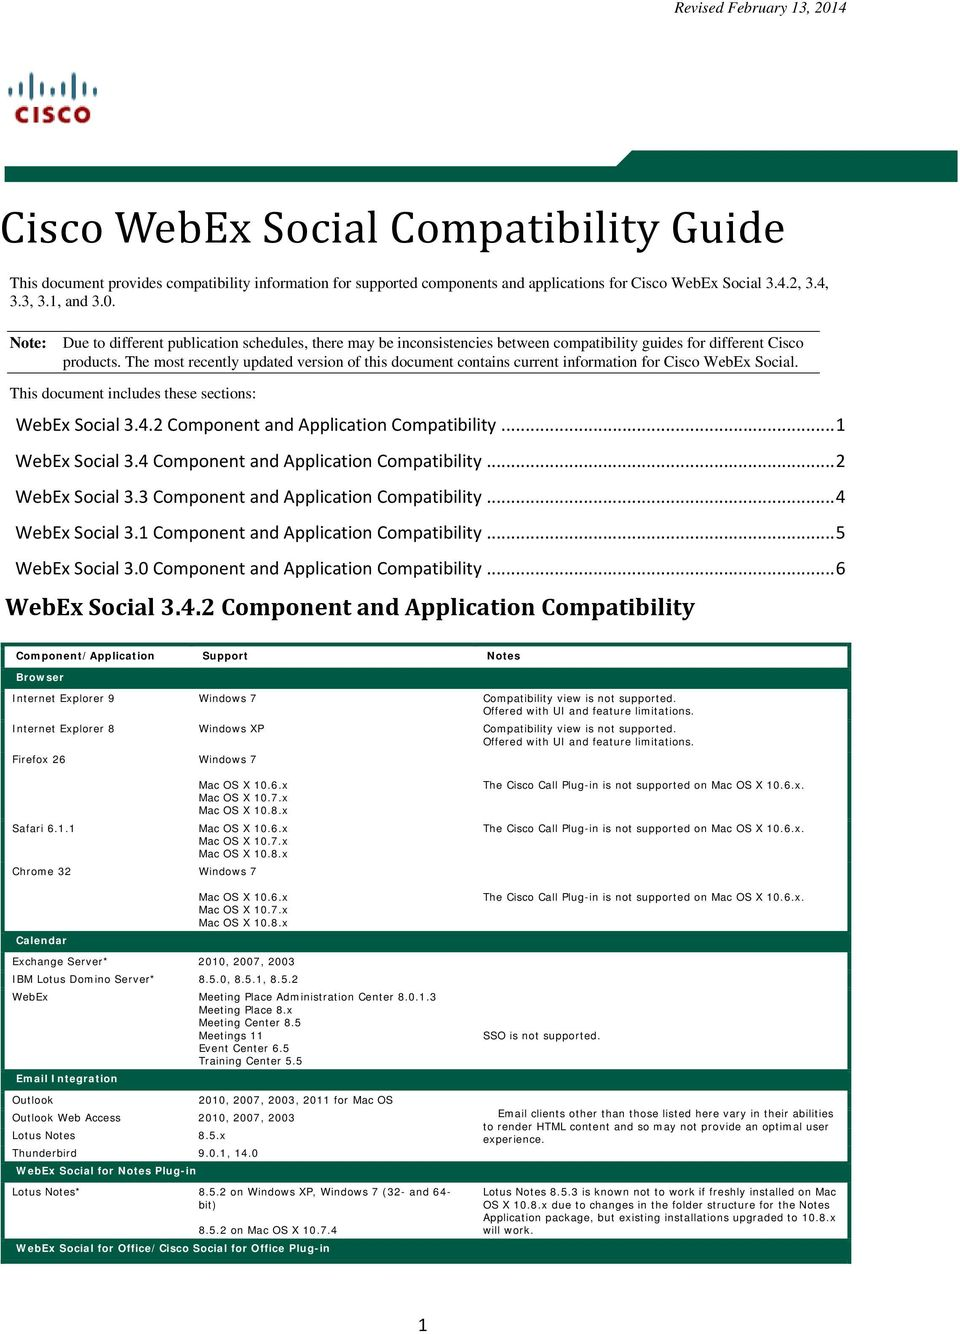 The most recently updated version of this document contains current information for Cisco WebEx Social. This document includes these sections: WebEx Social 3.4.